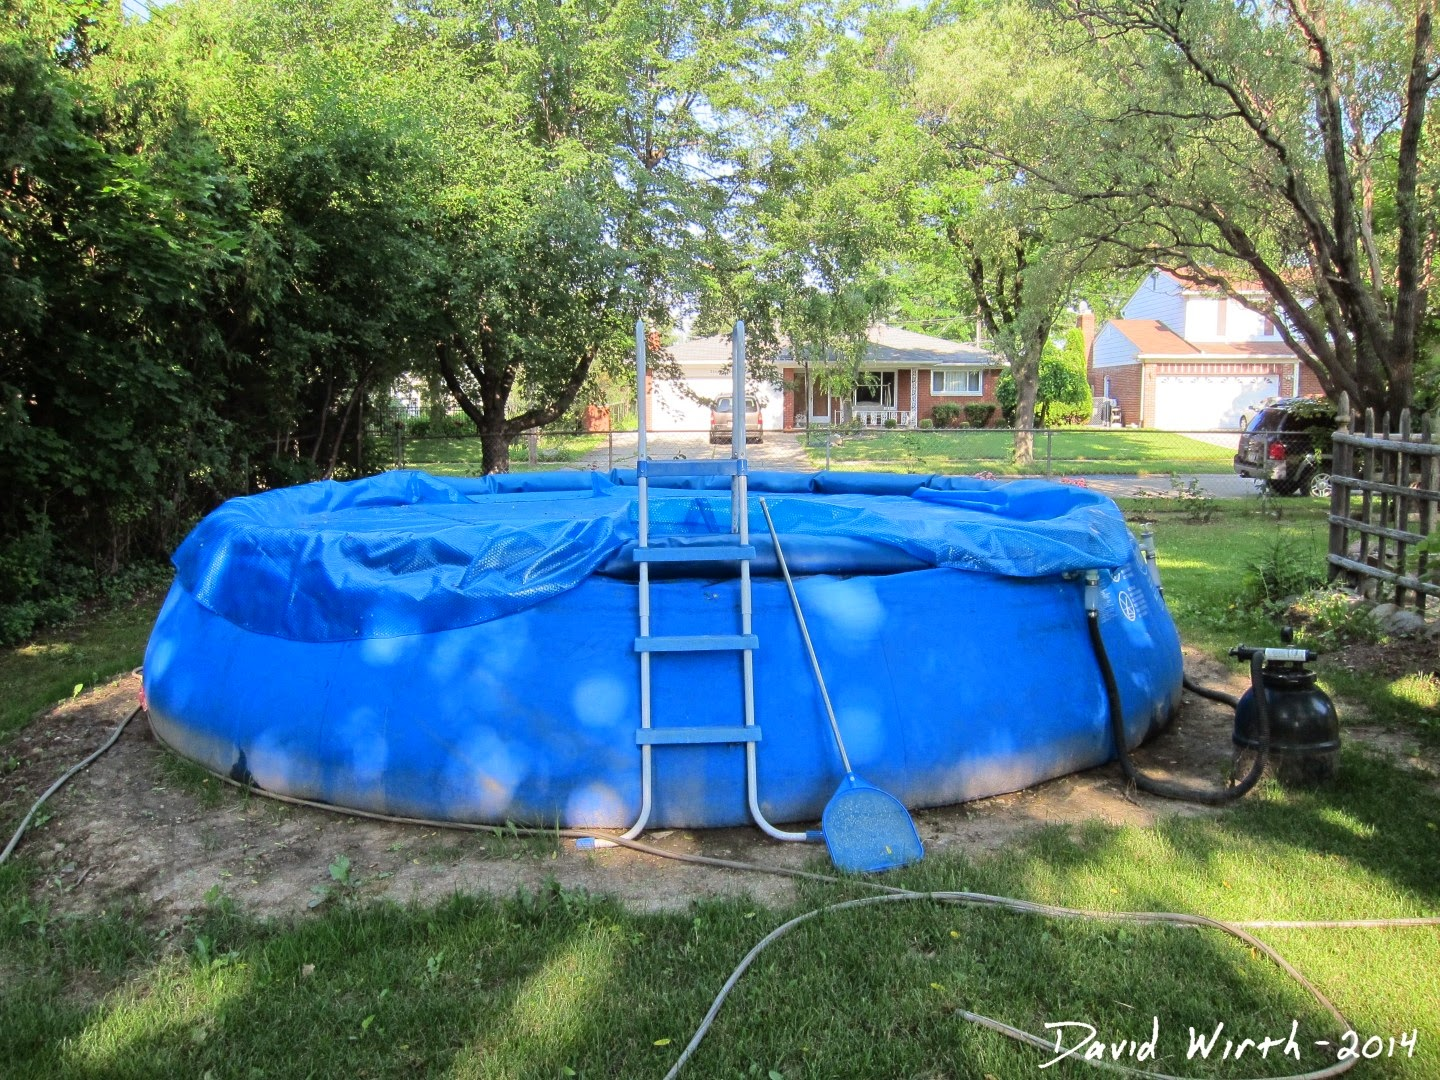 intex 19 foot pool, 18', 18 foot intex pool, price, cost, size, diameter